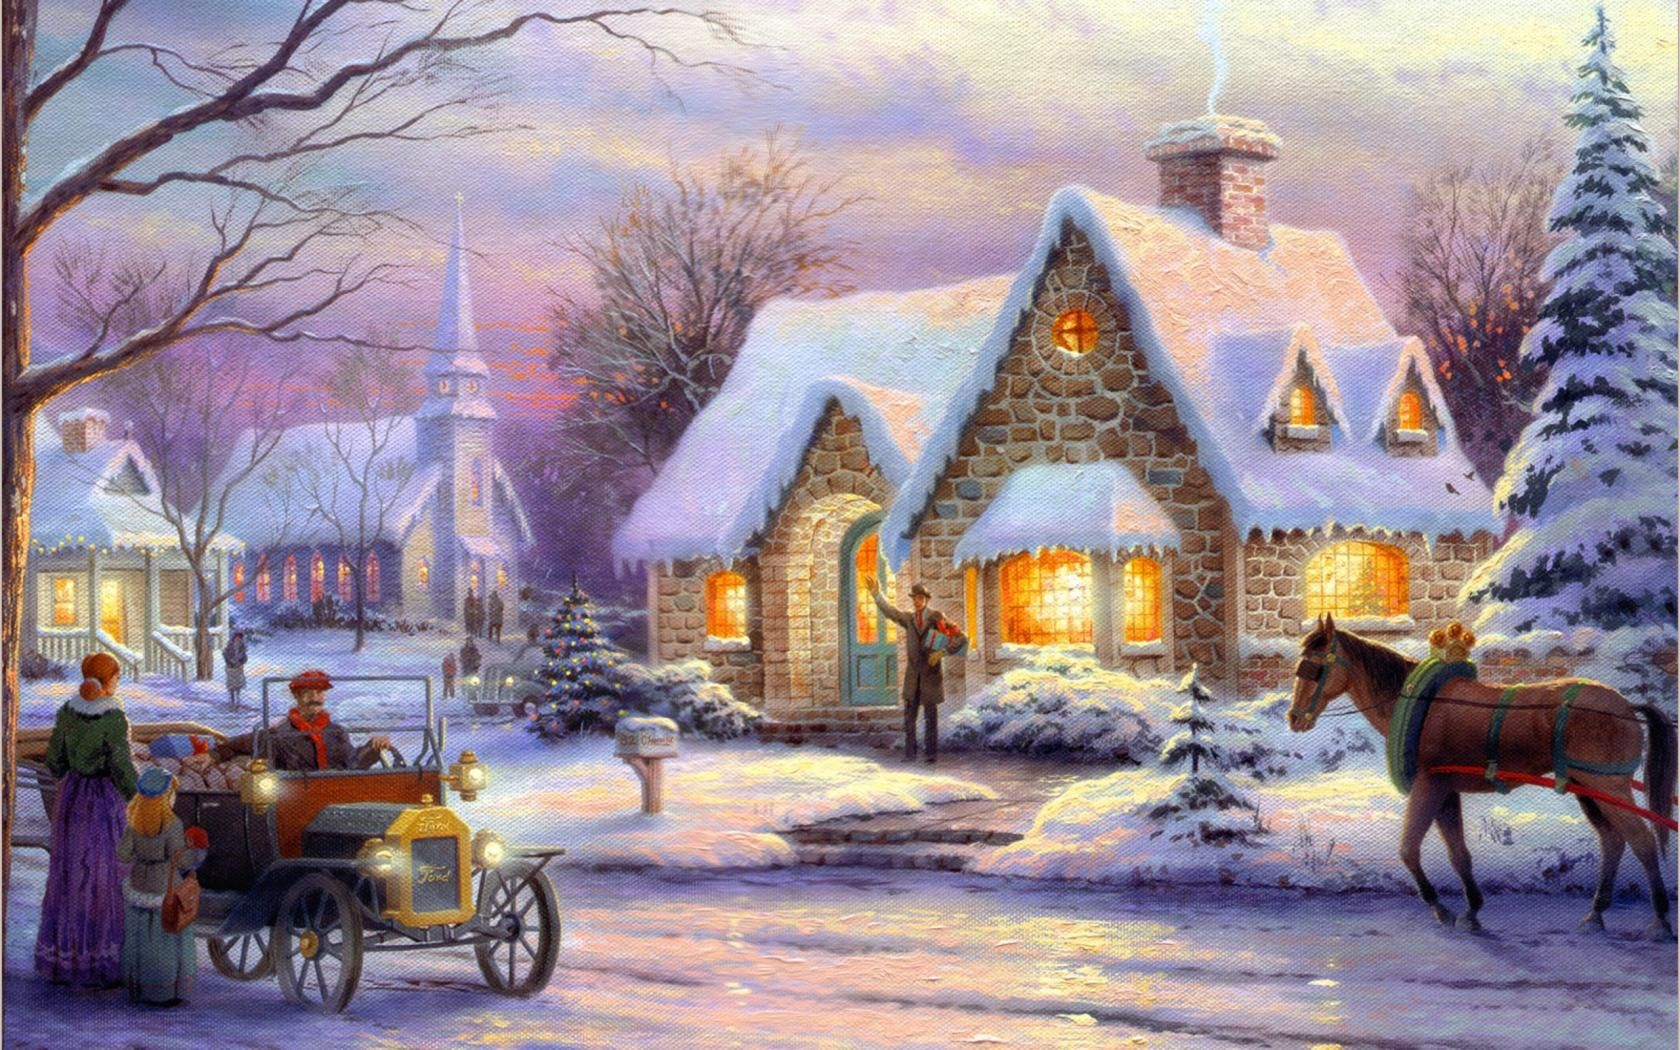 Memories Of Christmas By Thomas Kinkade Wallpaper Thomas Kinkade Art Thomas Kinkade Paintings Thomas Kinkade Christmas